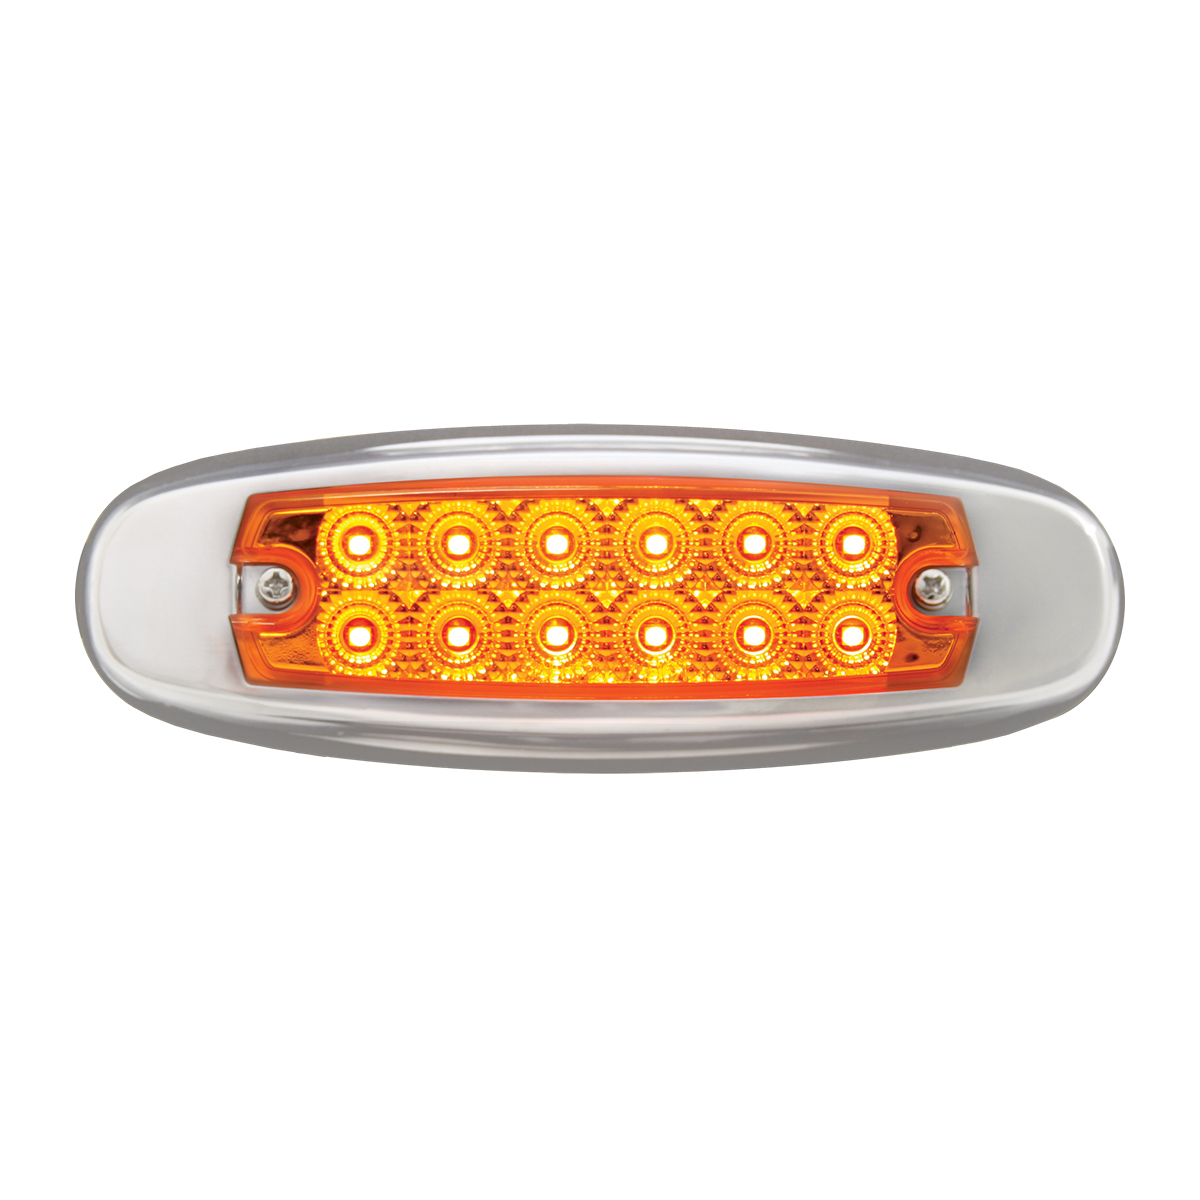 75130 24V Ultra Thin Spyder LED Marker Light w/ Stainless Steel Bezel